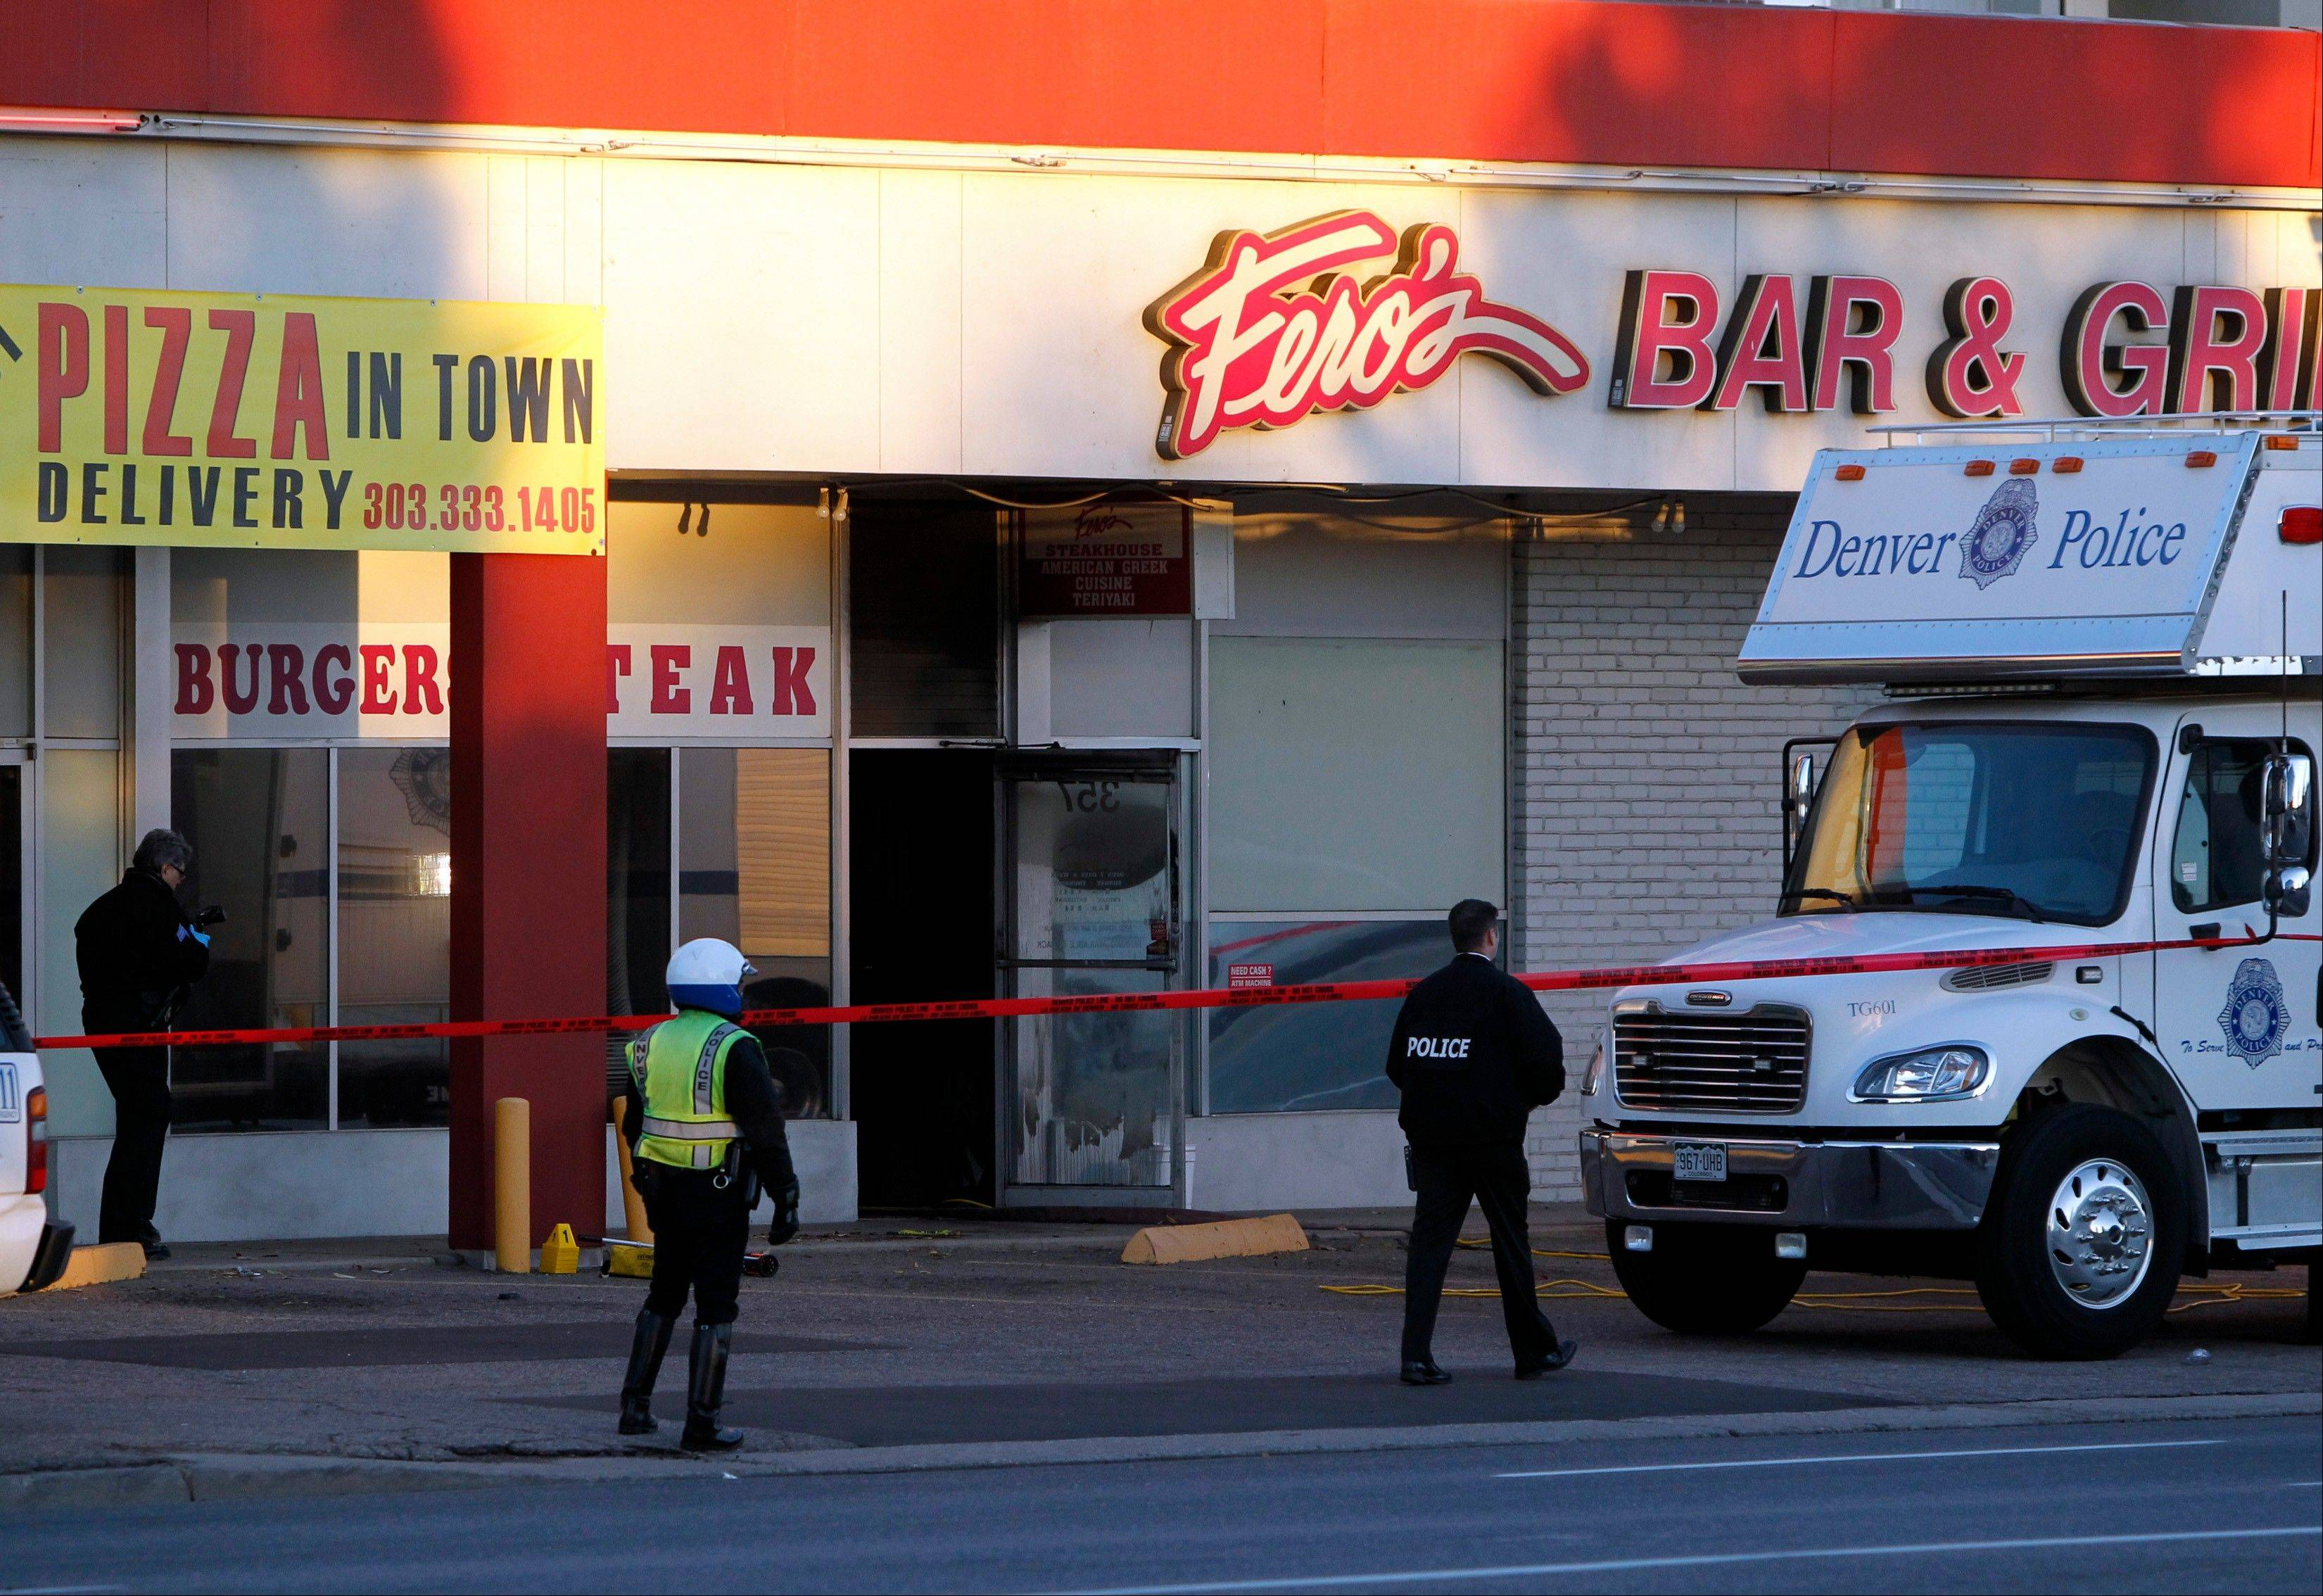 Police investigate at Fero�s Bar and Grill in Denver on Wednesday, Oct. 17, 2012, where the bodies of a man and four woman were discovered after firefighters extinguished a fire at the bar early Wednesday morning. Police think the blaze was set to cover up their slayings.